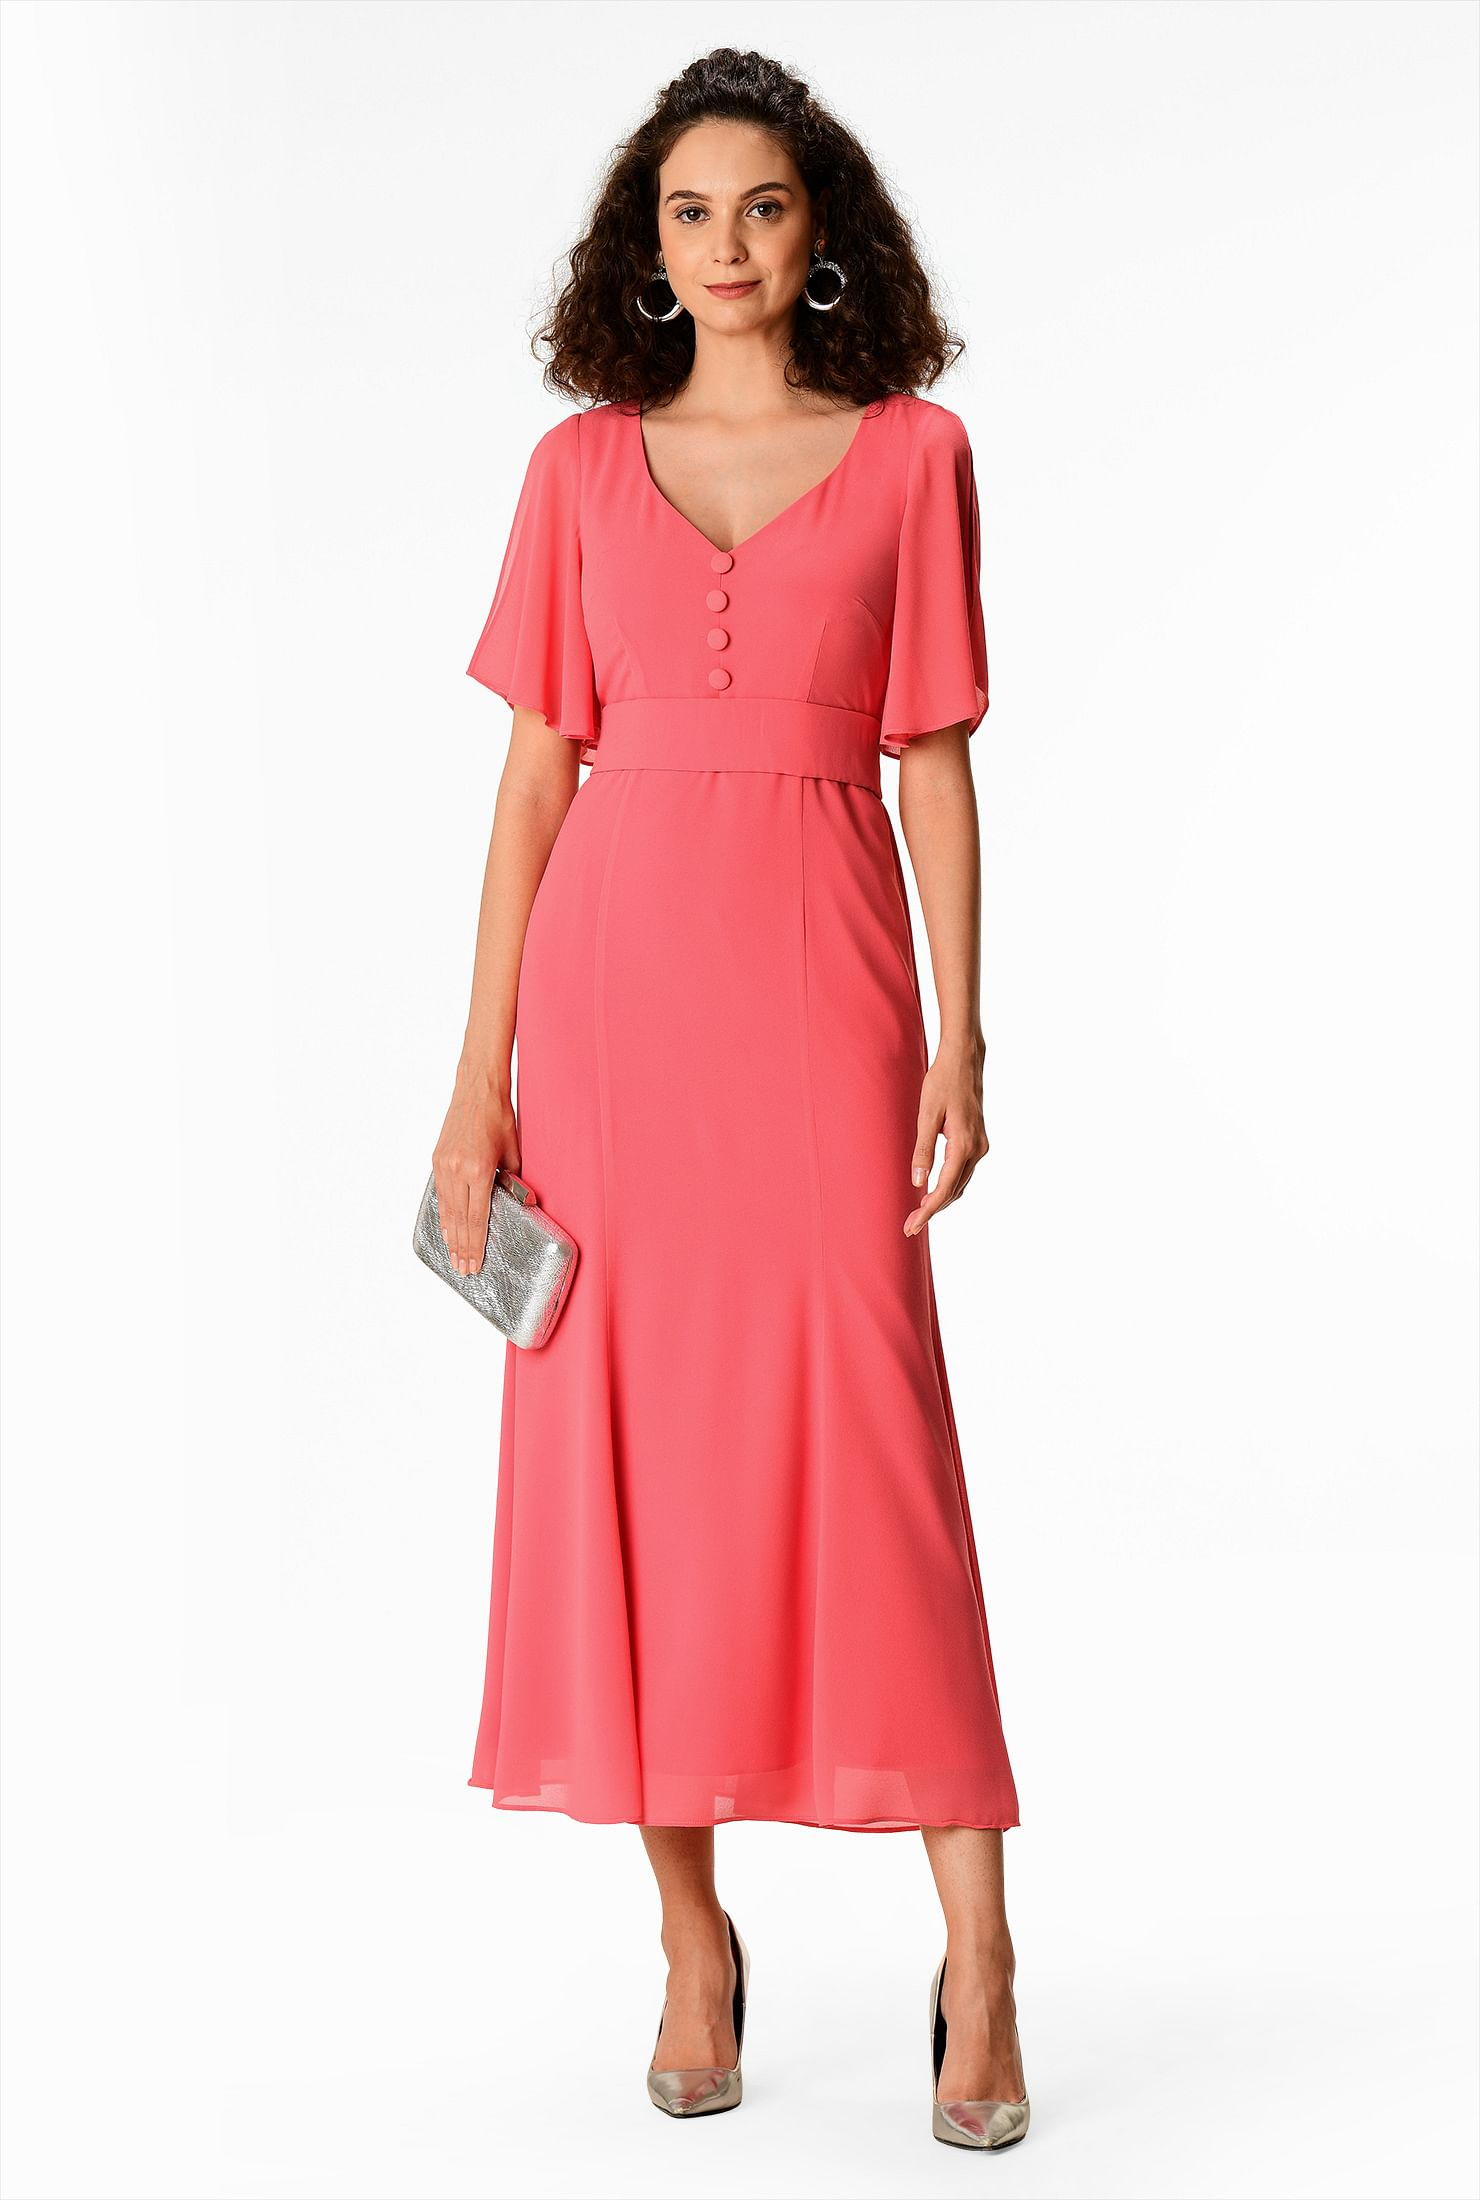 1930s Day Dresses, Afternoon Dresses History Flared sleeve chiffon trumpet midi dress $89.95 AT vintagedancer.com